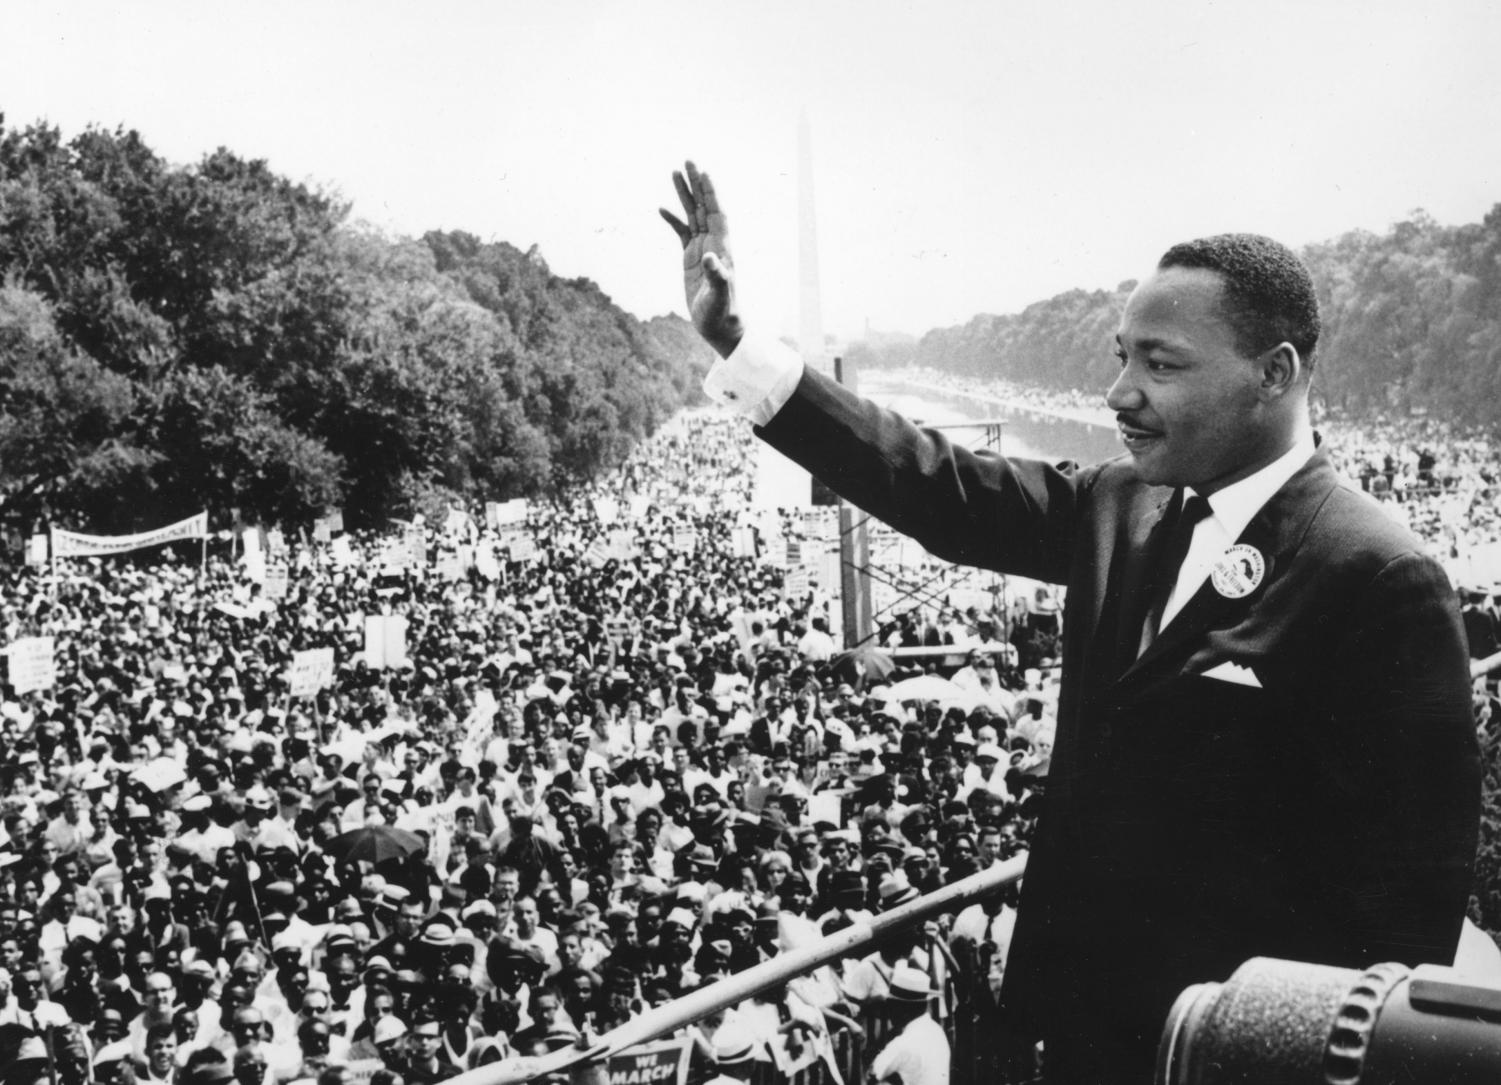 Dr. Martin Luther King, Jr., giving his famous